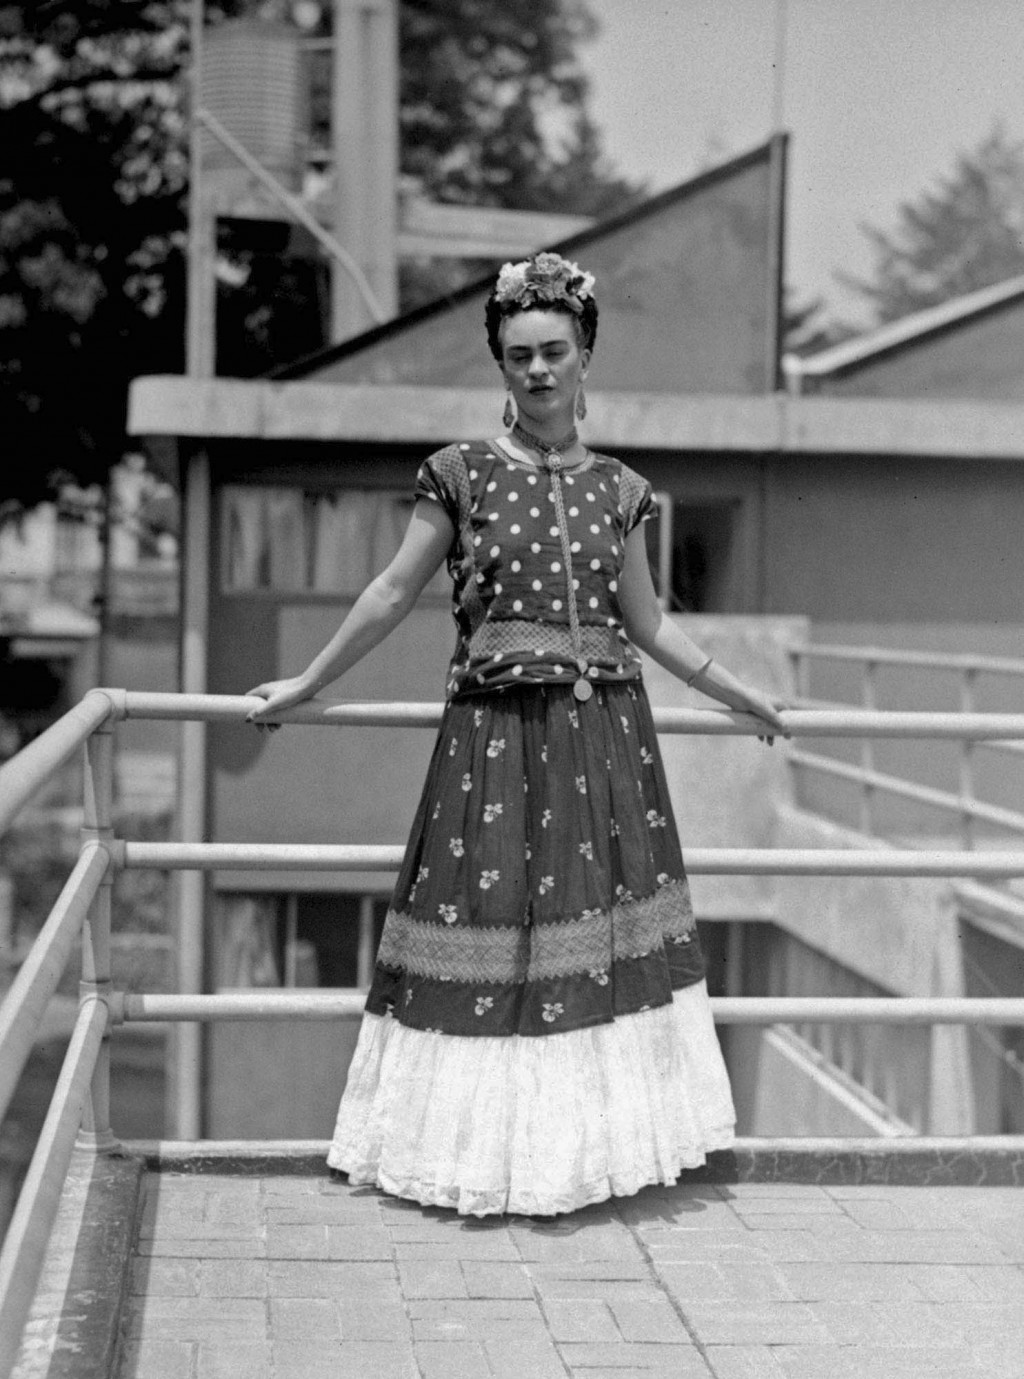 FILE - In this April 14, 1939 file photo, painter and surrealist Frida Kahlo, who was the wife of noted Mexican muralist Diego Rivera, poses at her ho